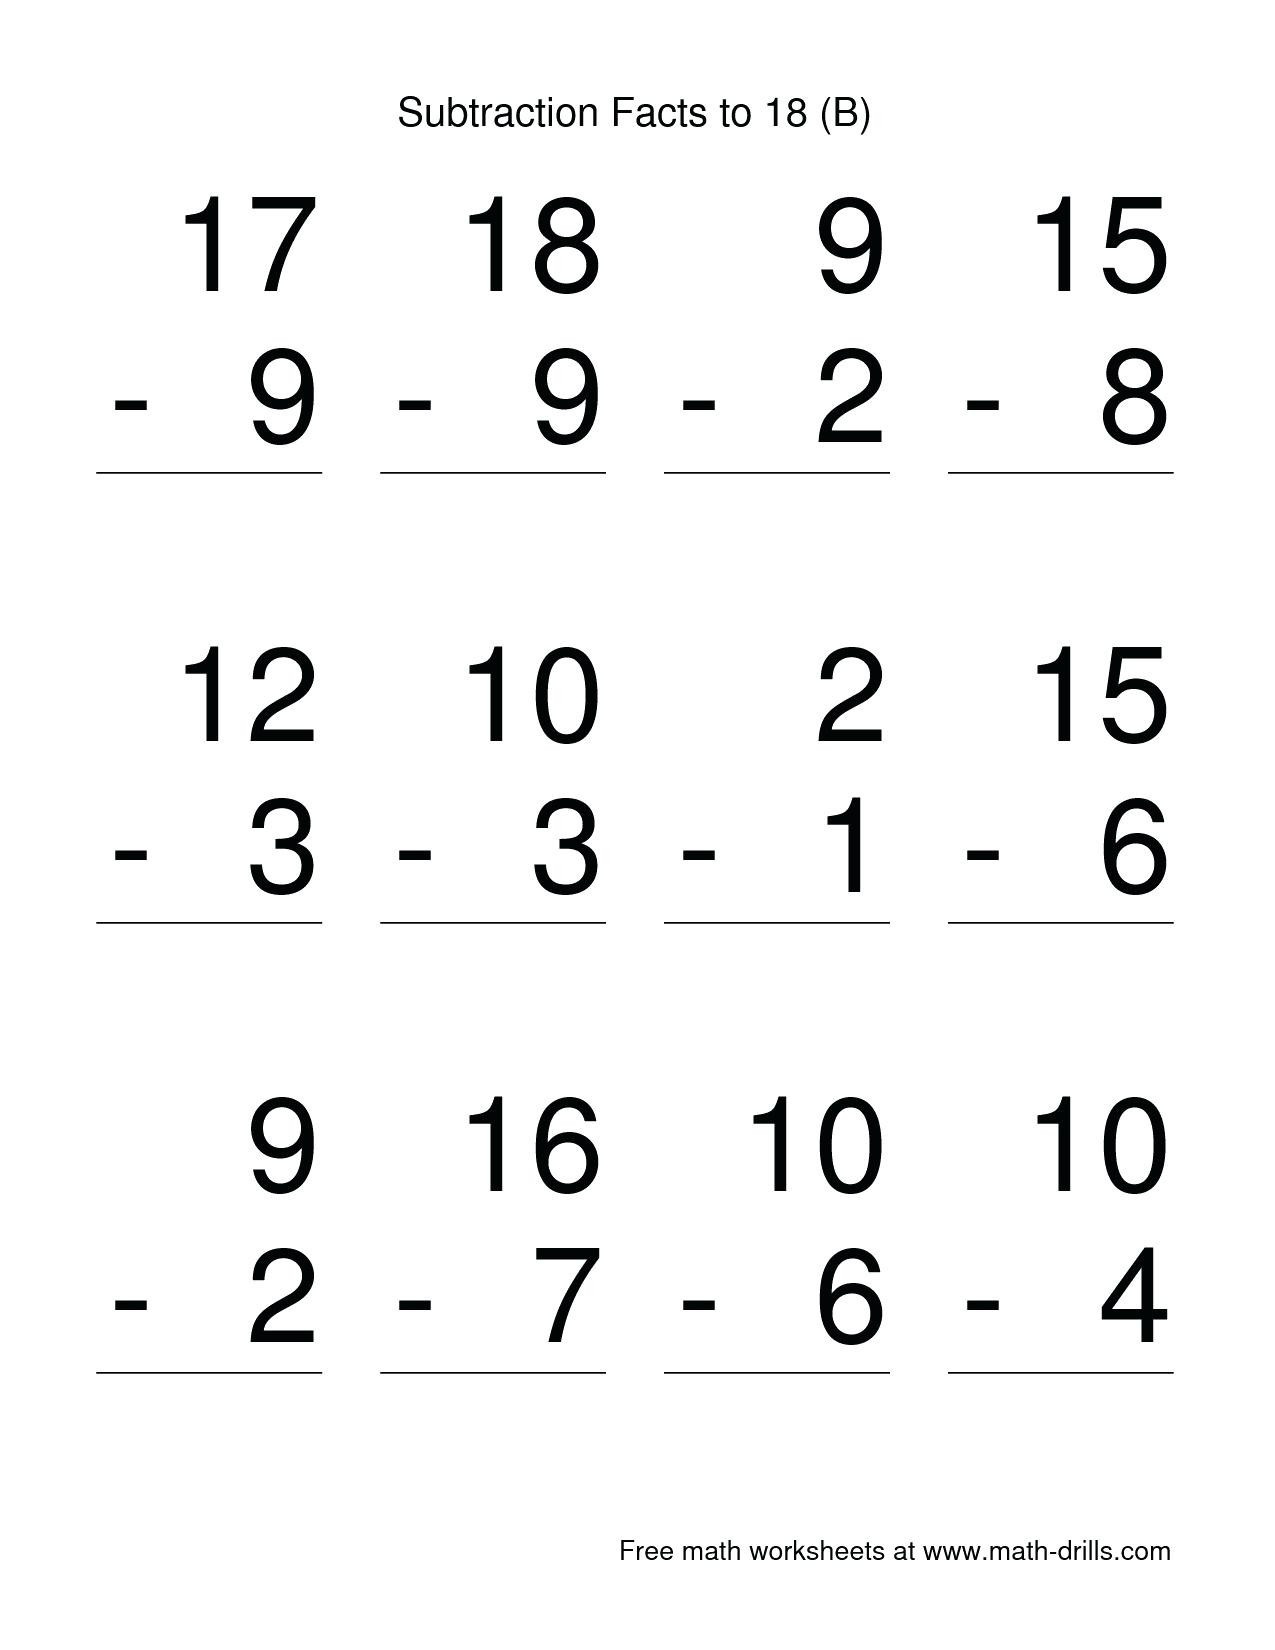 Subtraction Worksheet for 1st Grade 5 Free Math Worksheets First Grade 1 Word Problems